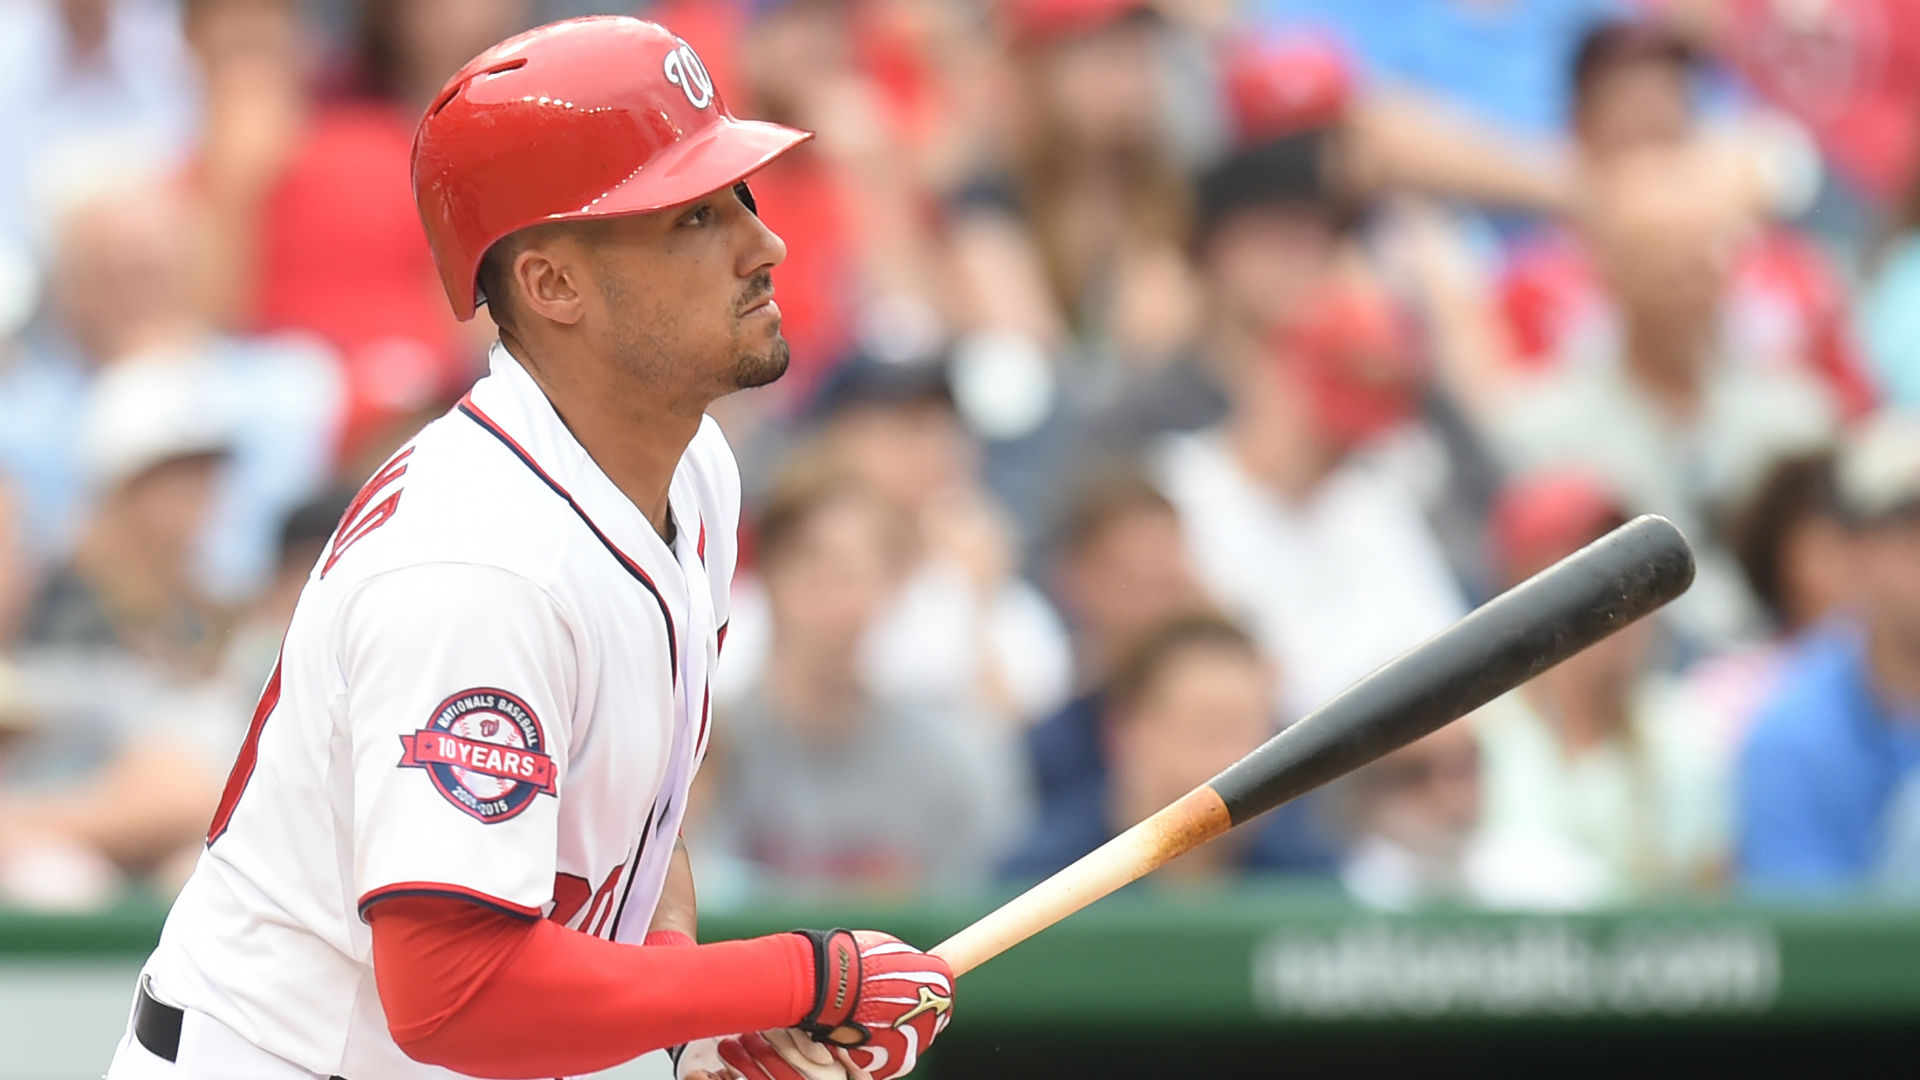 Ian-Desmond-072315-GETTY-FTR